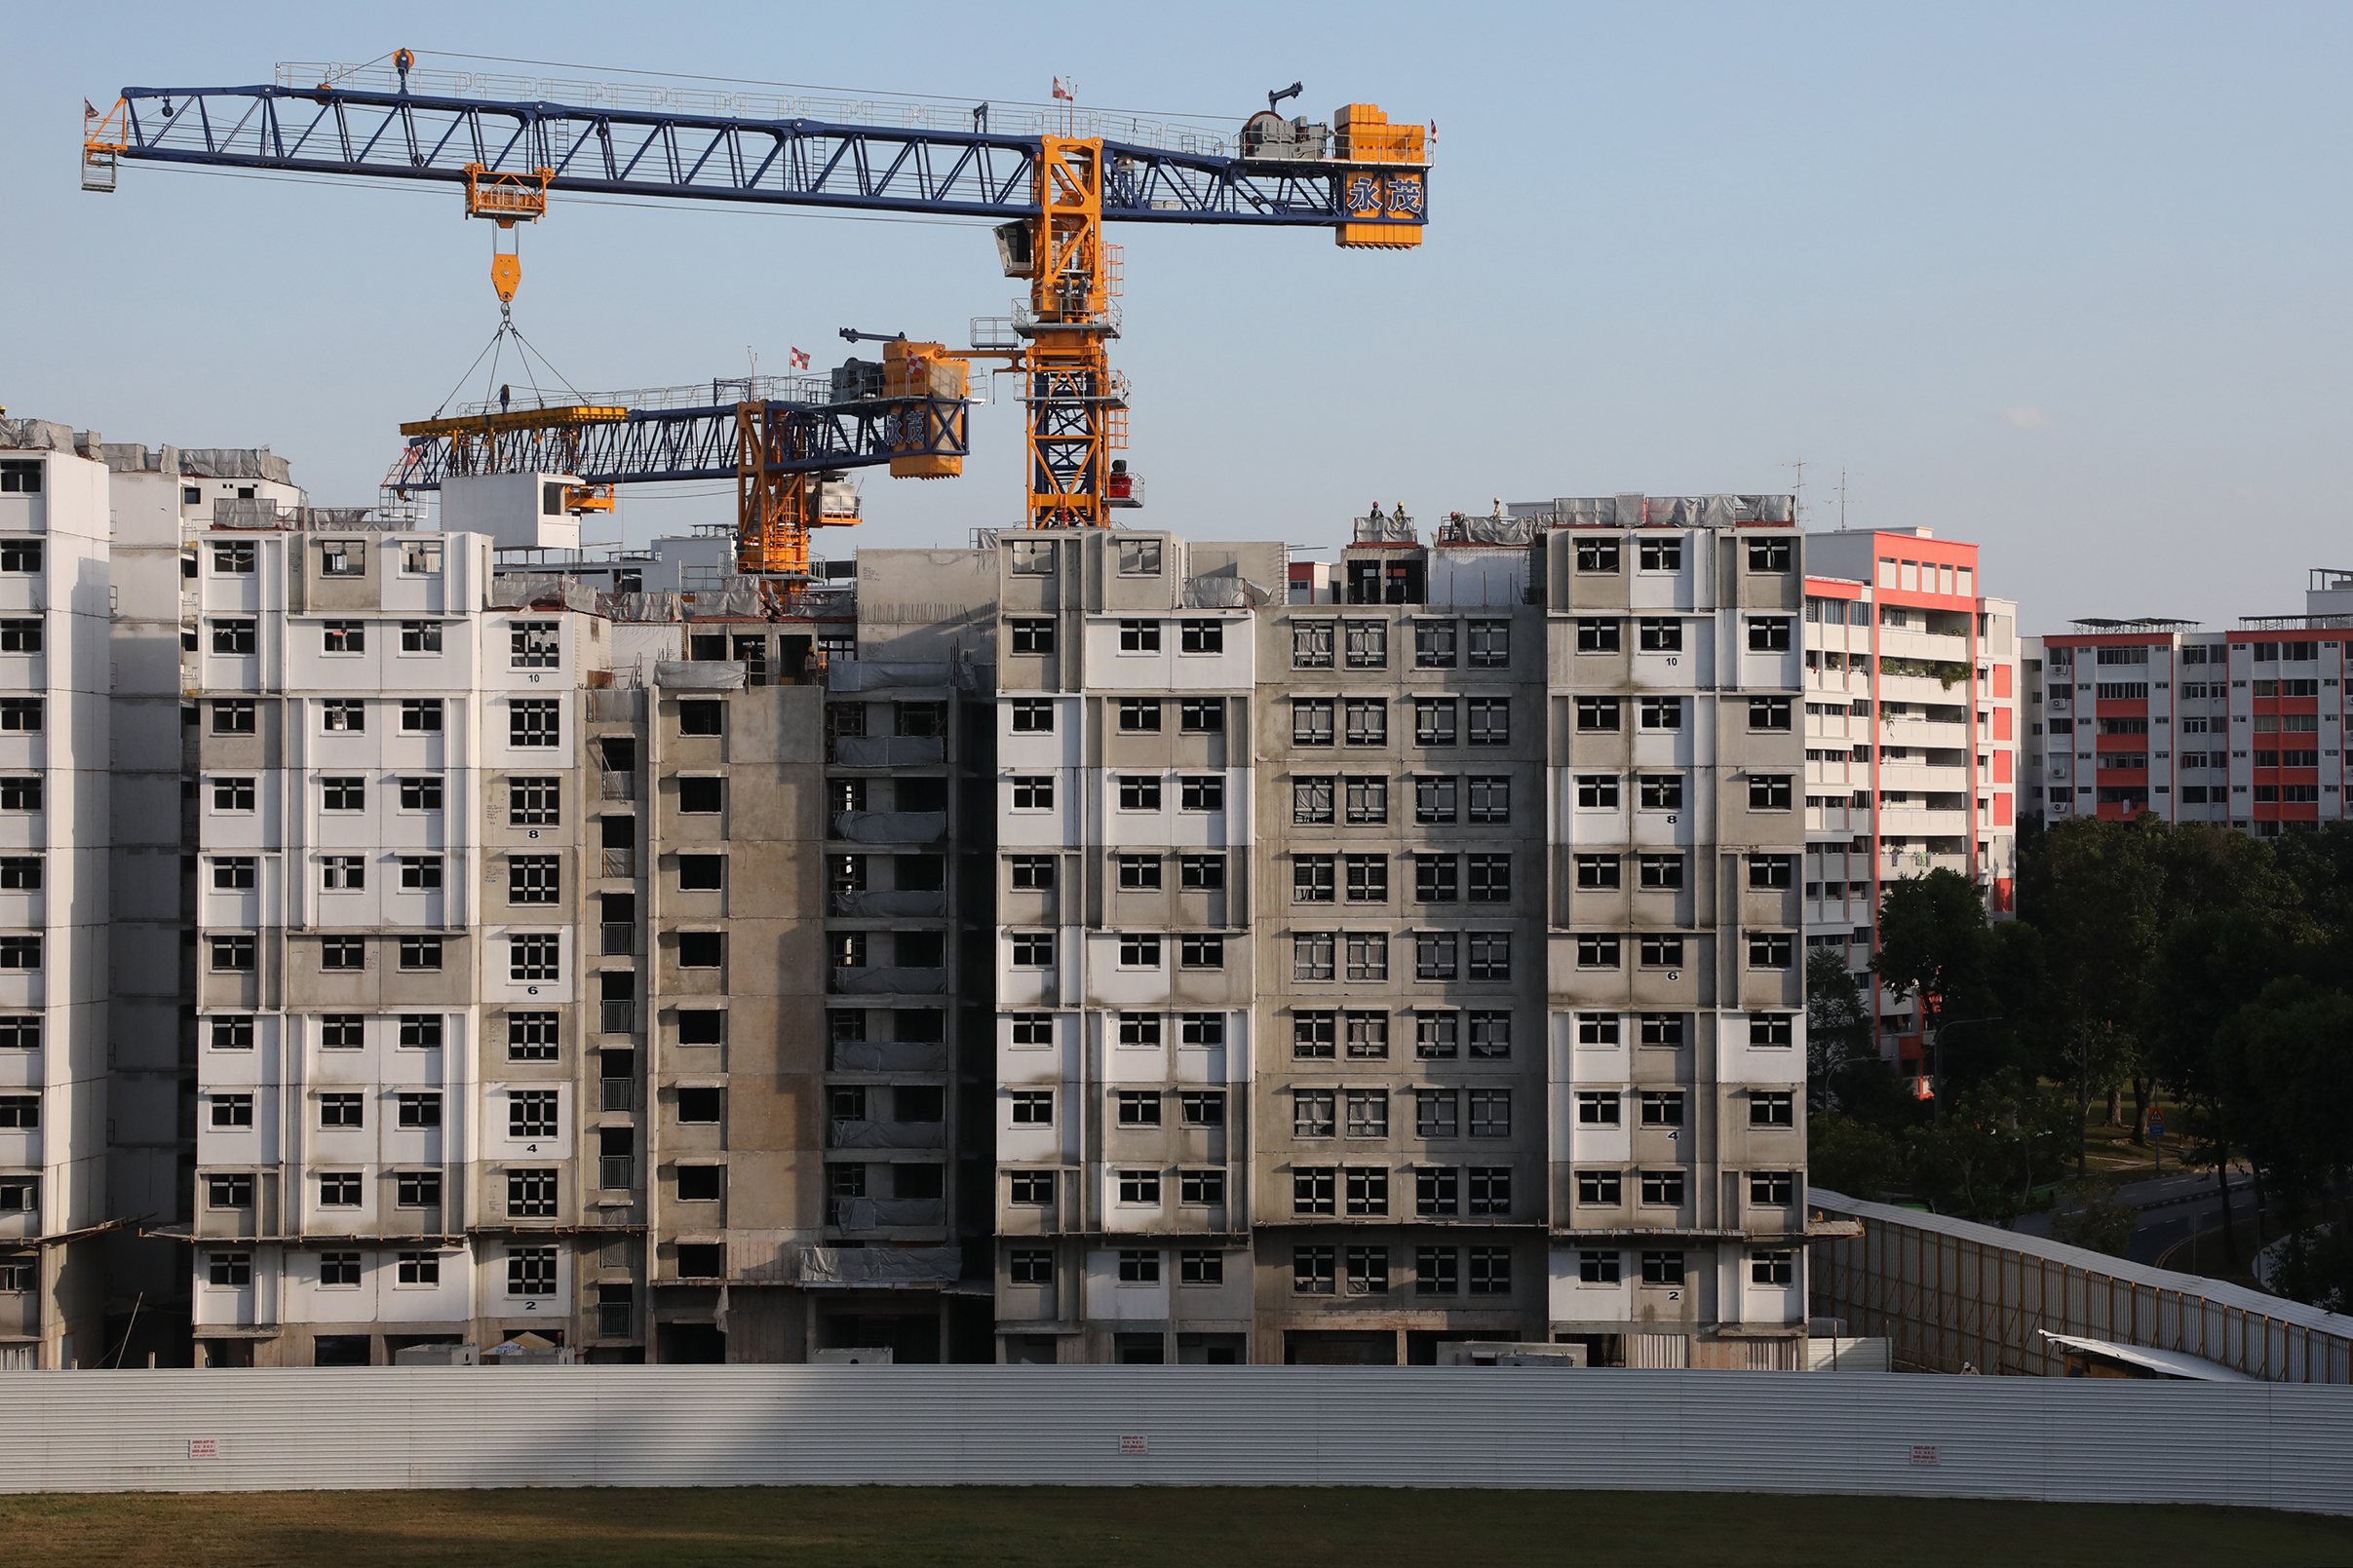 Most experts TODAY spoke to said policy tweaks to ease requirements for singles could be considered, but a 'free-for-all' situation would not be possible. The crux of the issue is that while HDB has to cater to various types of housing needs, it only